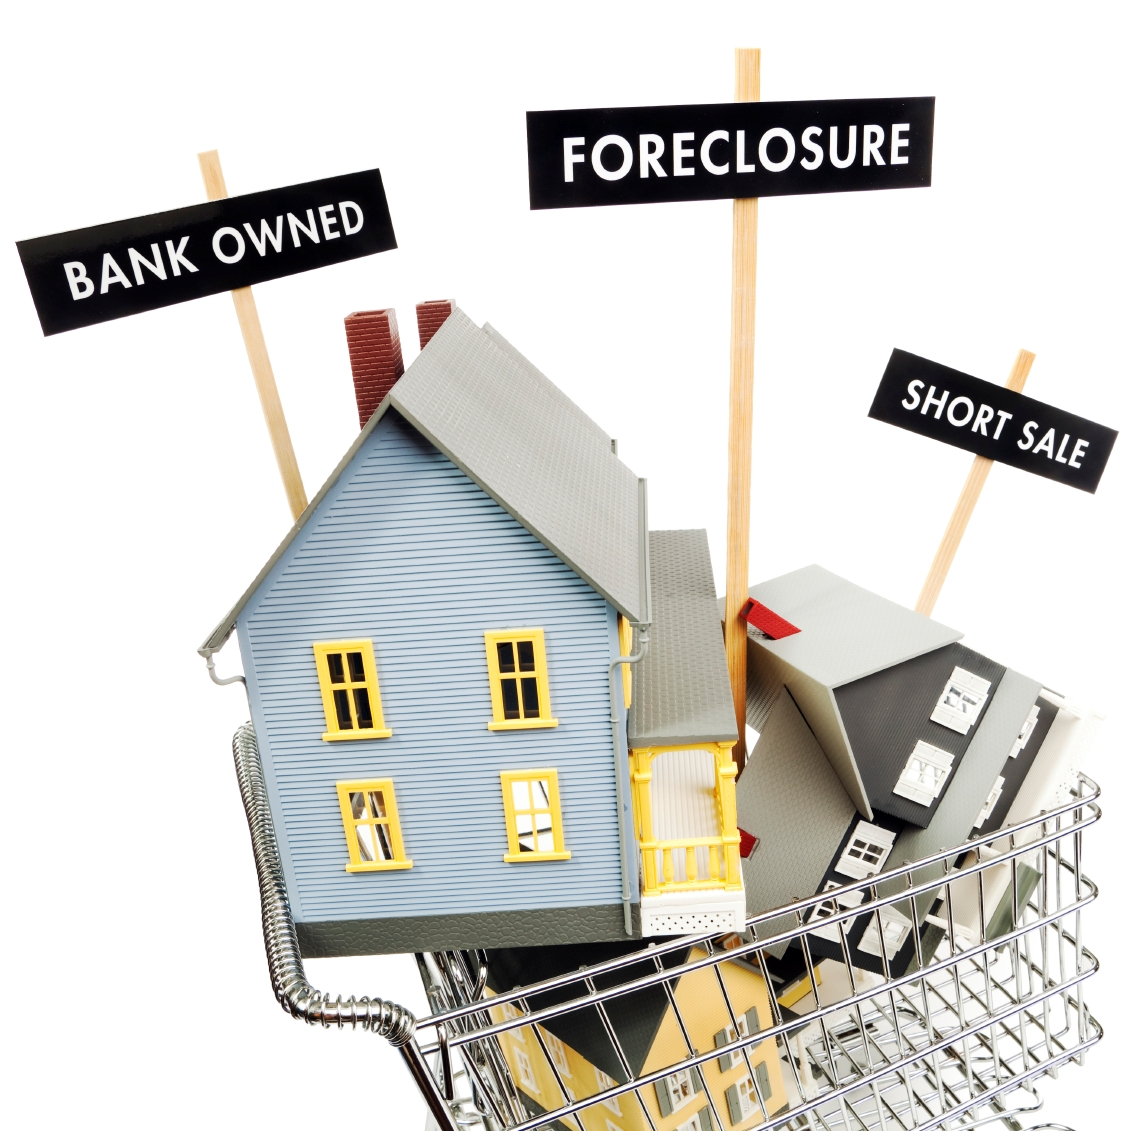 Your Foreclosure And Short Sale